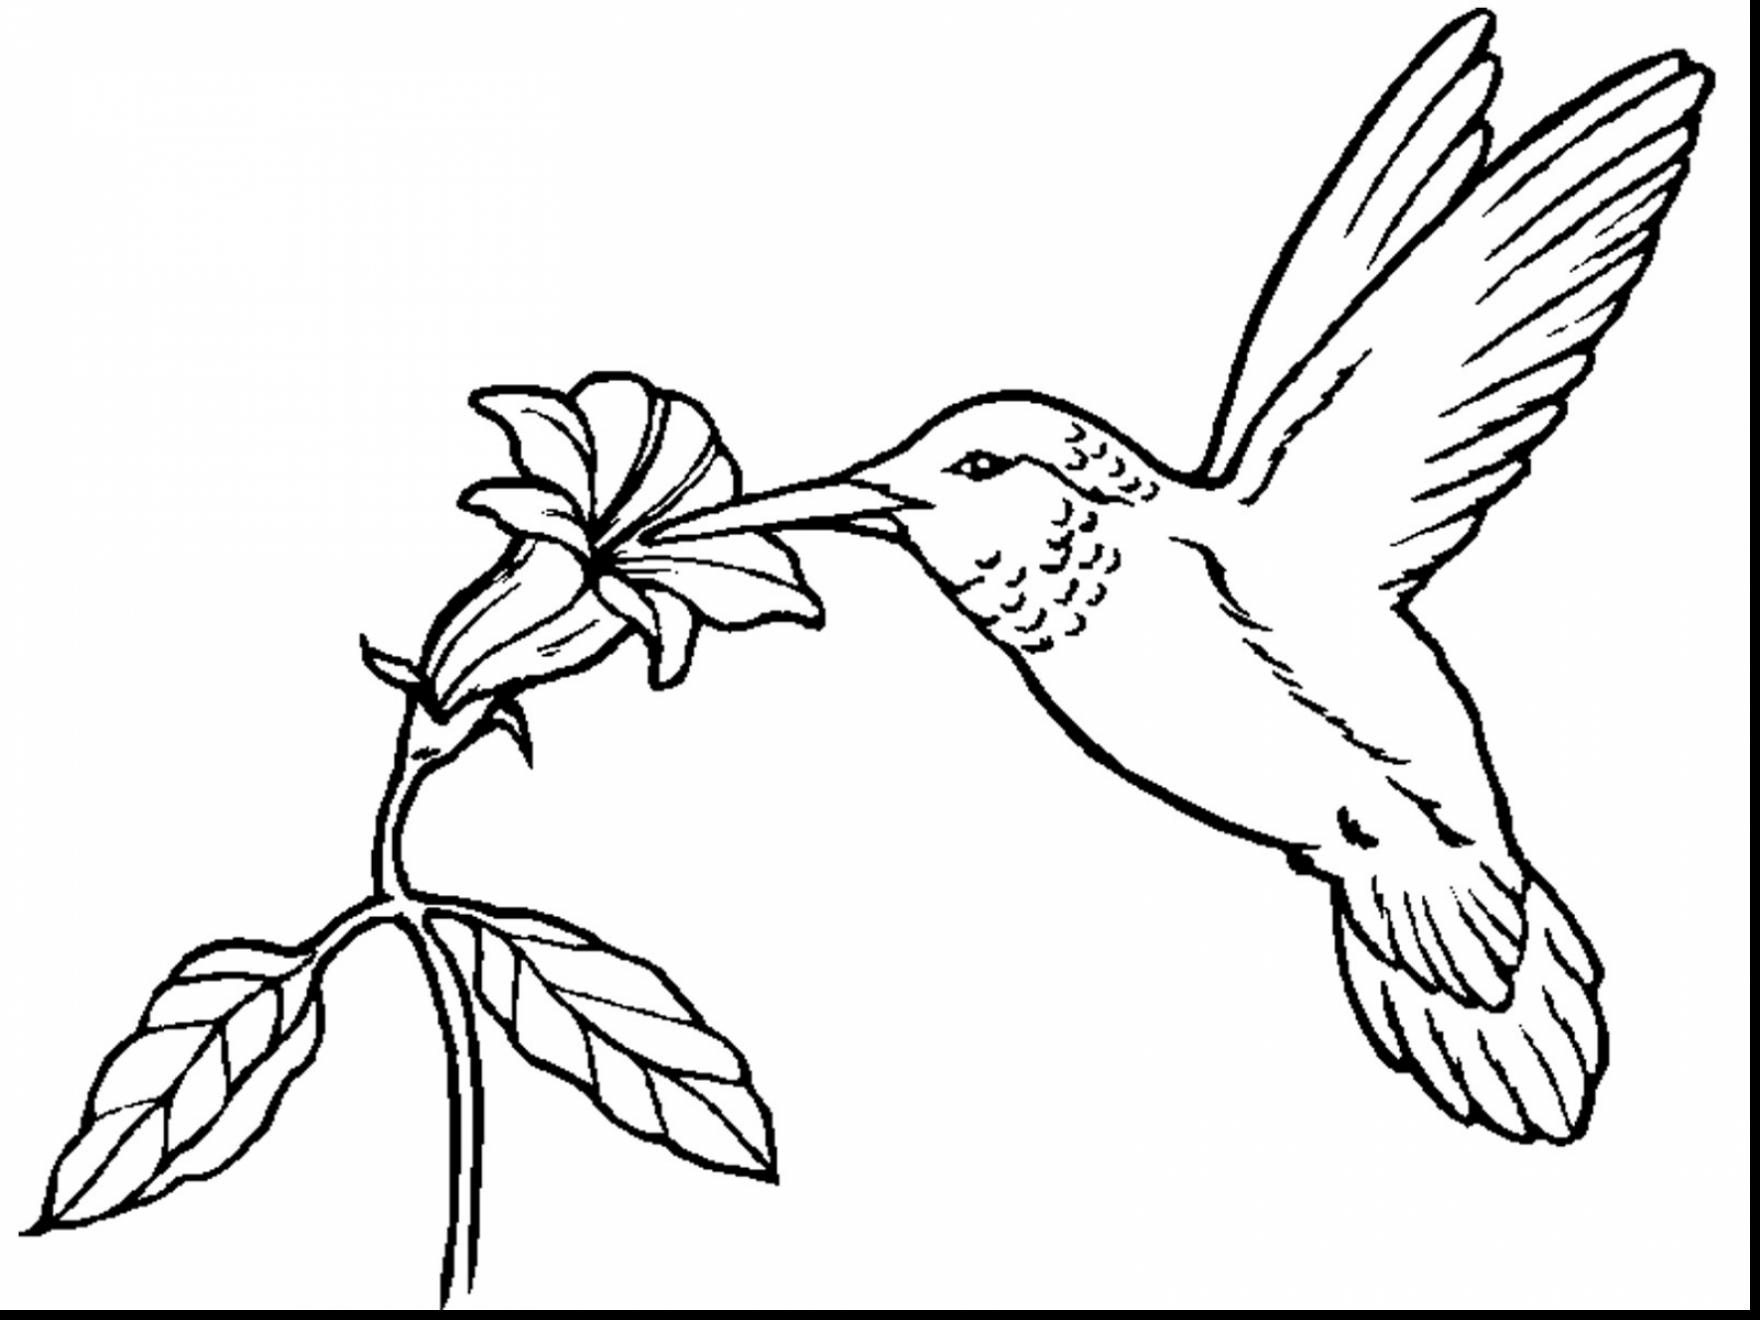 free printable hummingbird coloring pages free printable hummingbird coloring pages for kids printable hummingbird coloring free pages